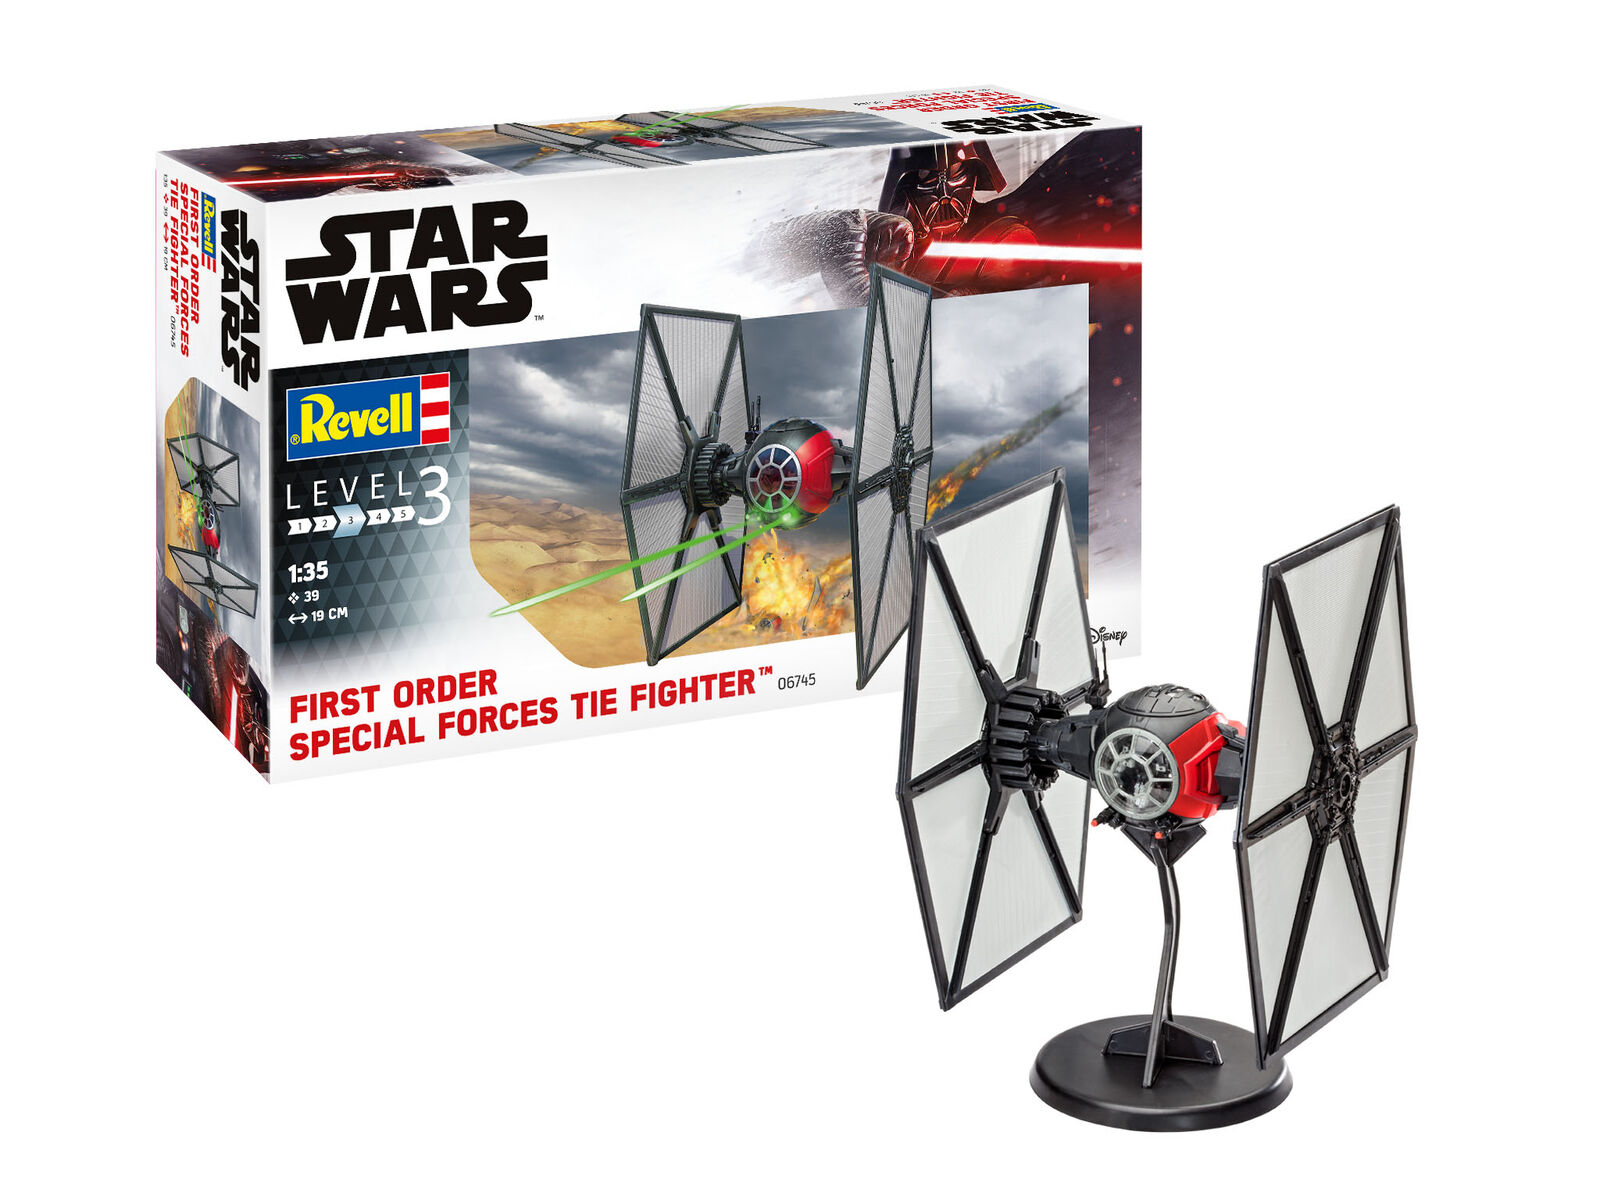 Revell 1 35 Star Wars Wars Wars First Order Special Forces Tie Fighter  06745 7b3